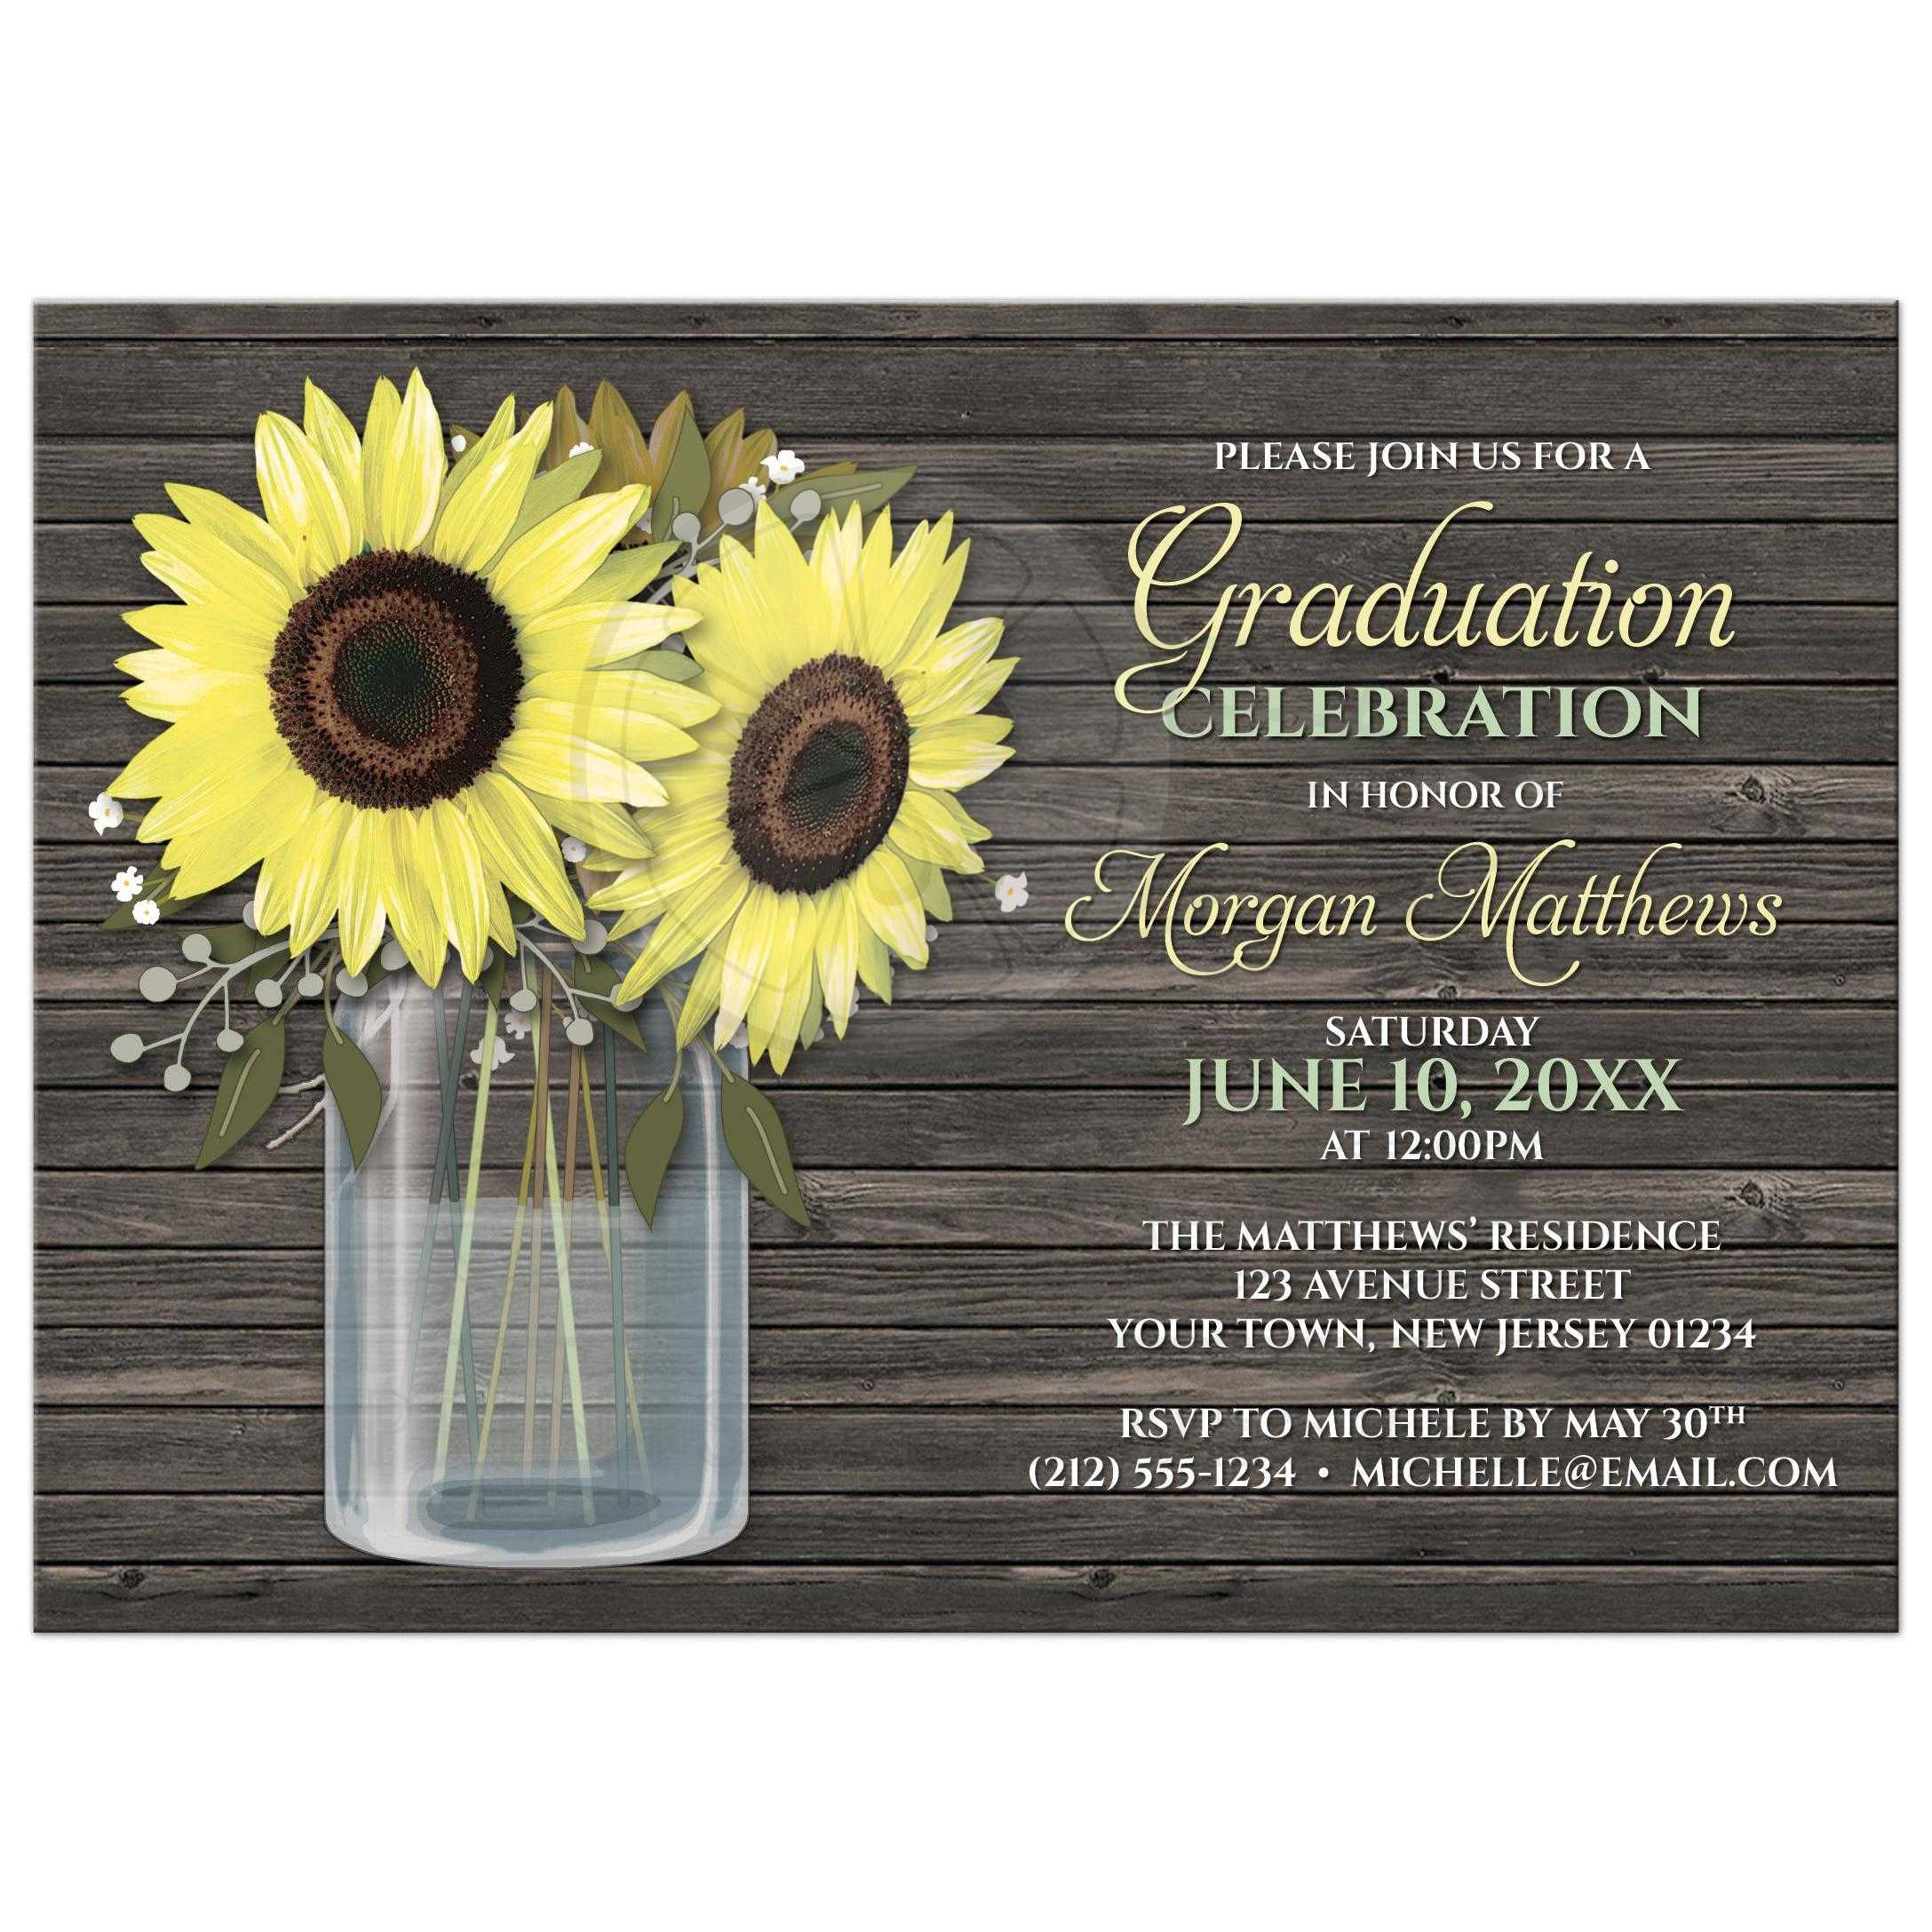 50020 Rectangle Rustic Sunflower Wood Mason Jar Graduation Invitations Jpg T 1493479825